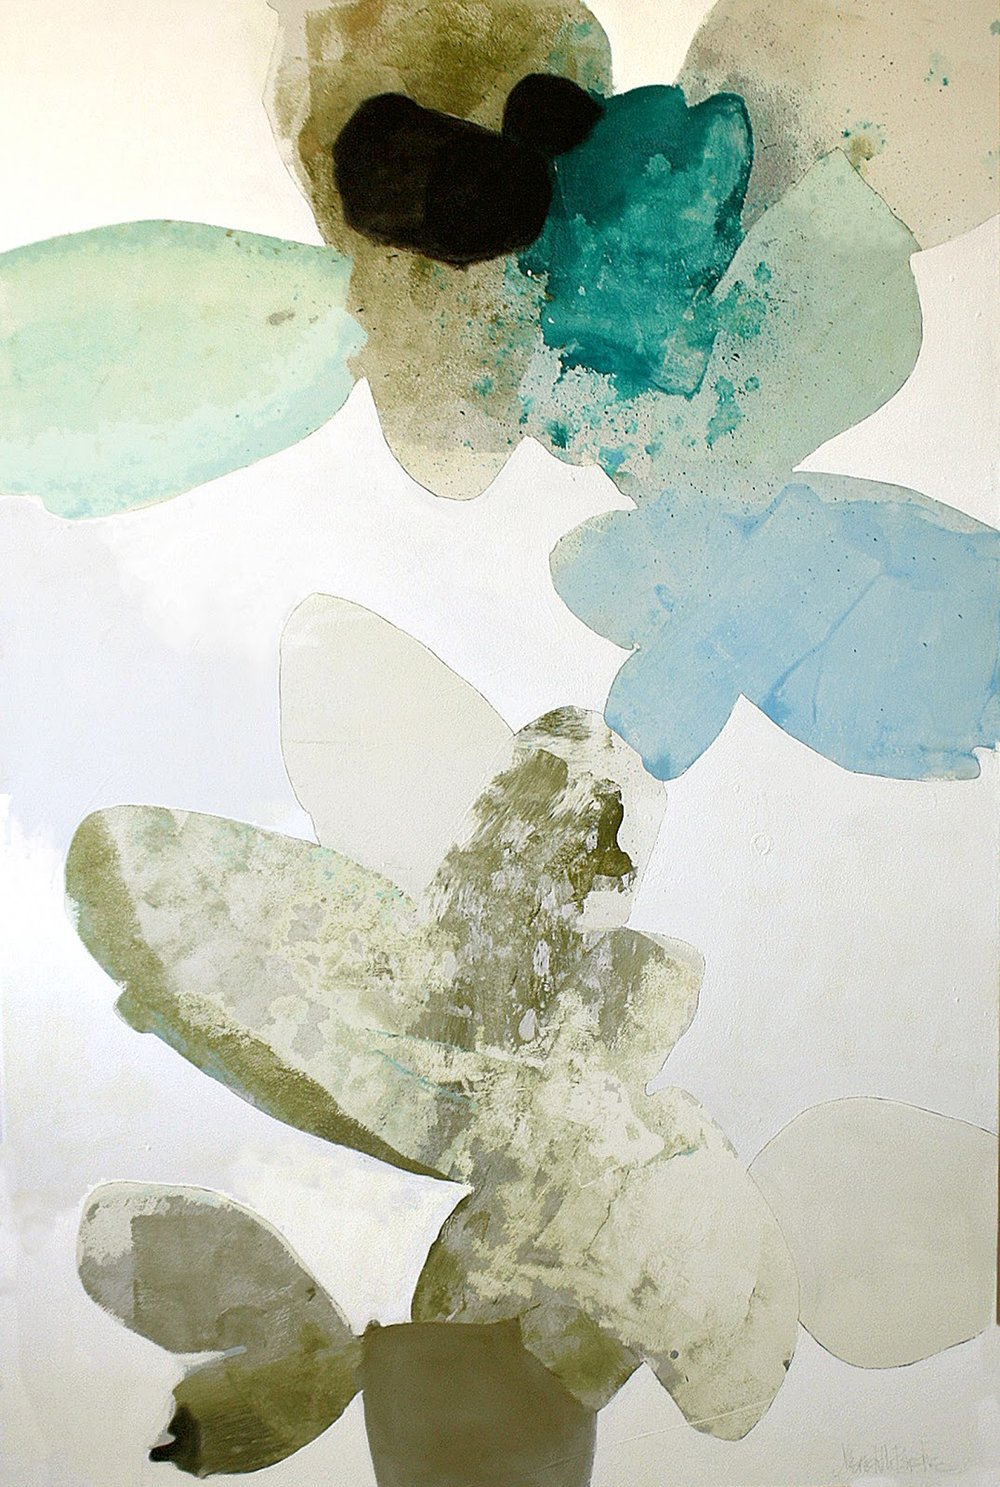 mapart.me:   Meredith Pardue - This Cloud Part I